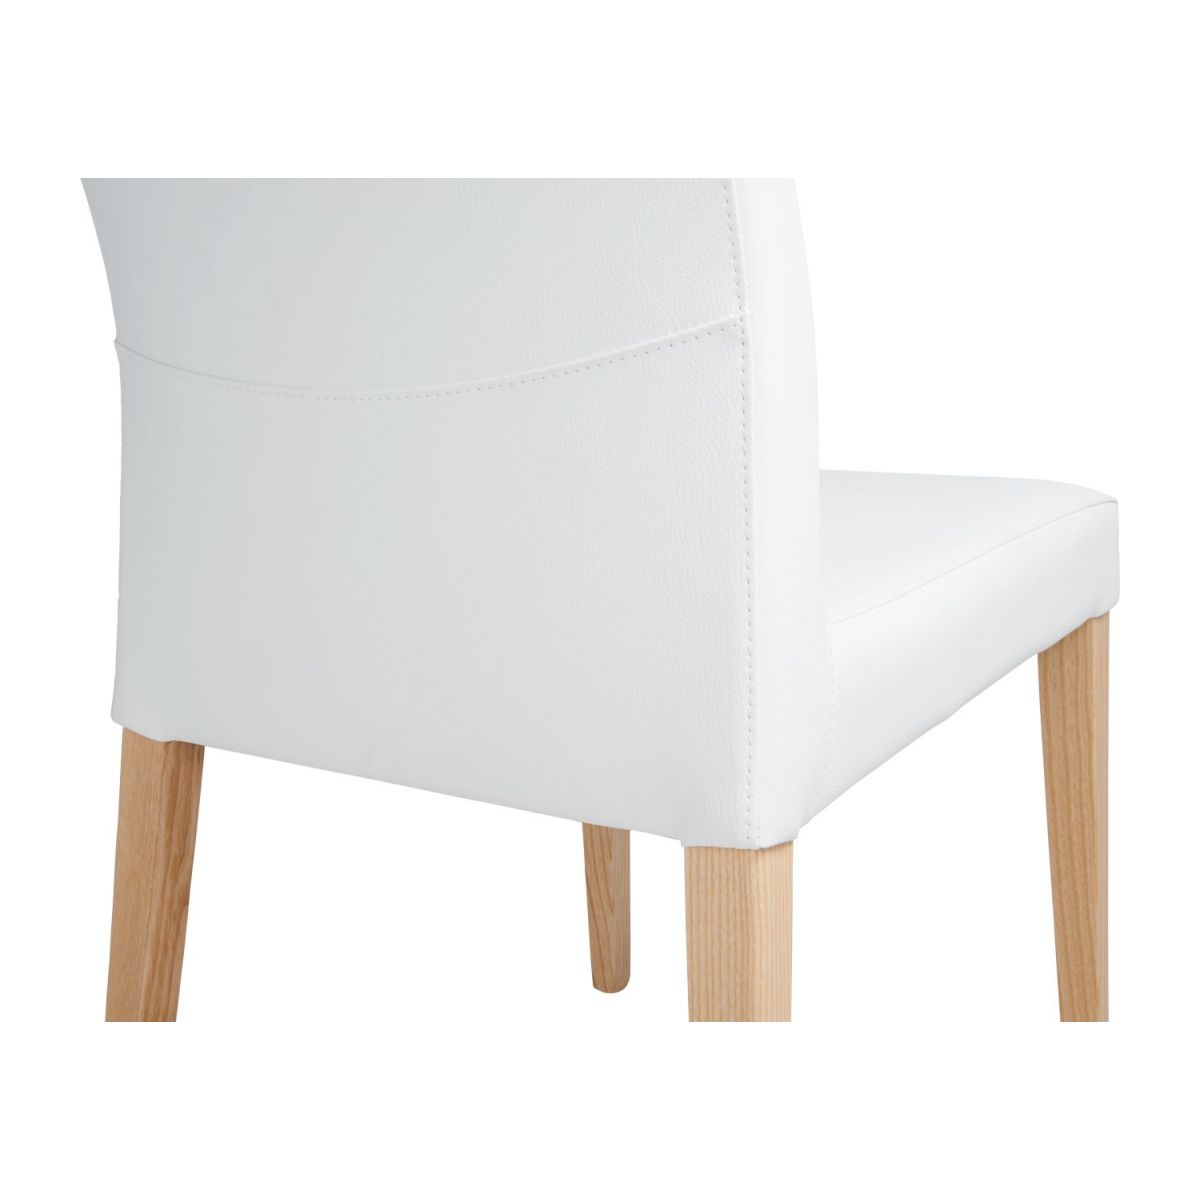 Chair made of imitation leather, white with ash legs n°6